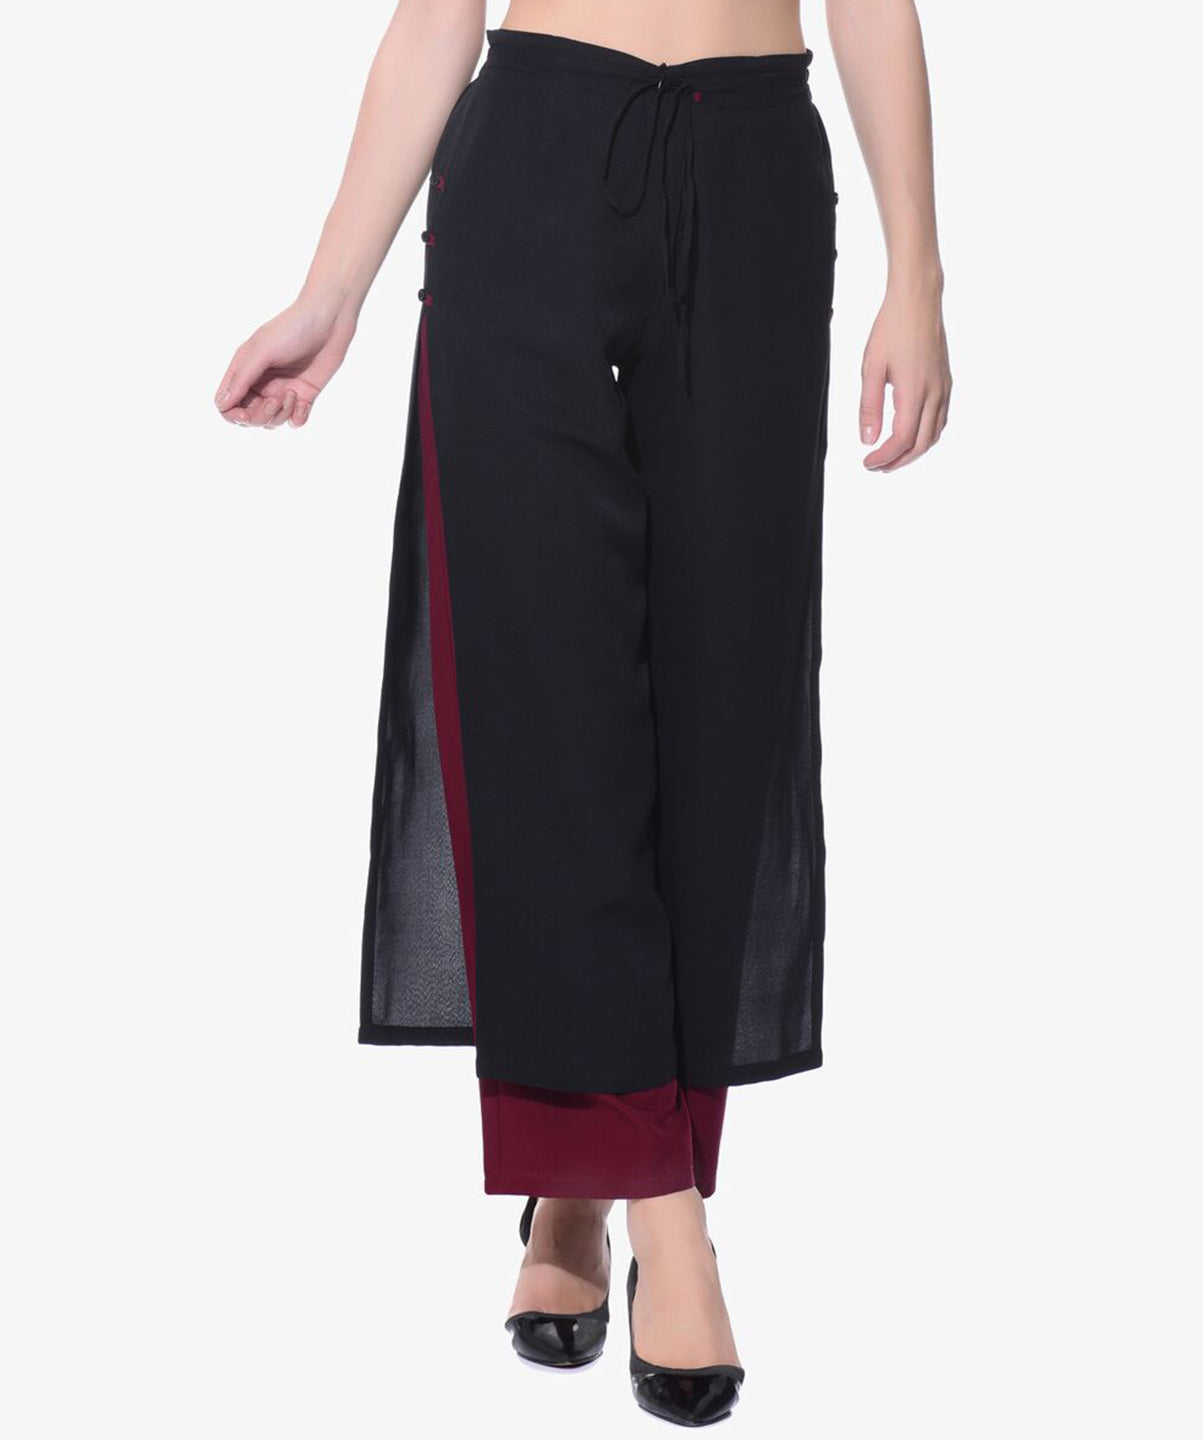 Uptownie Plus Colorblocked Black & Maroon Layered Palazzos 1 clearance sale